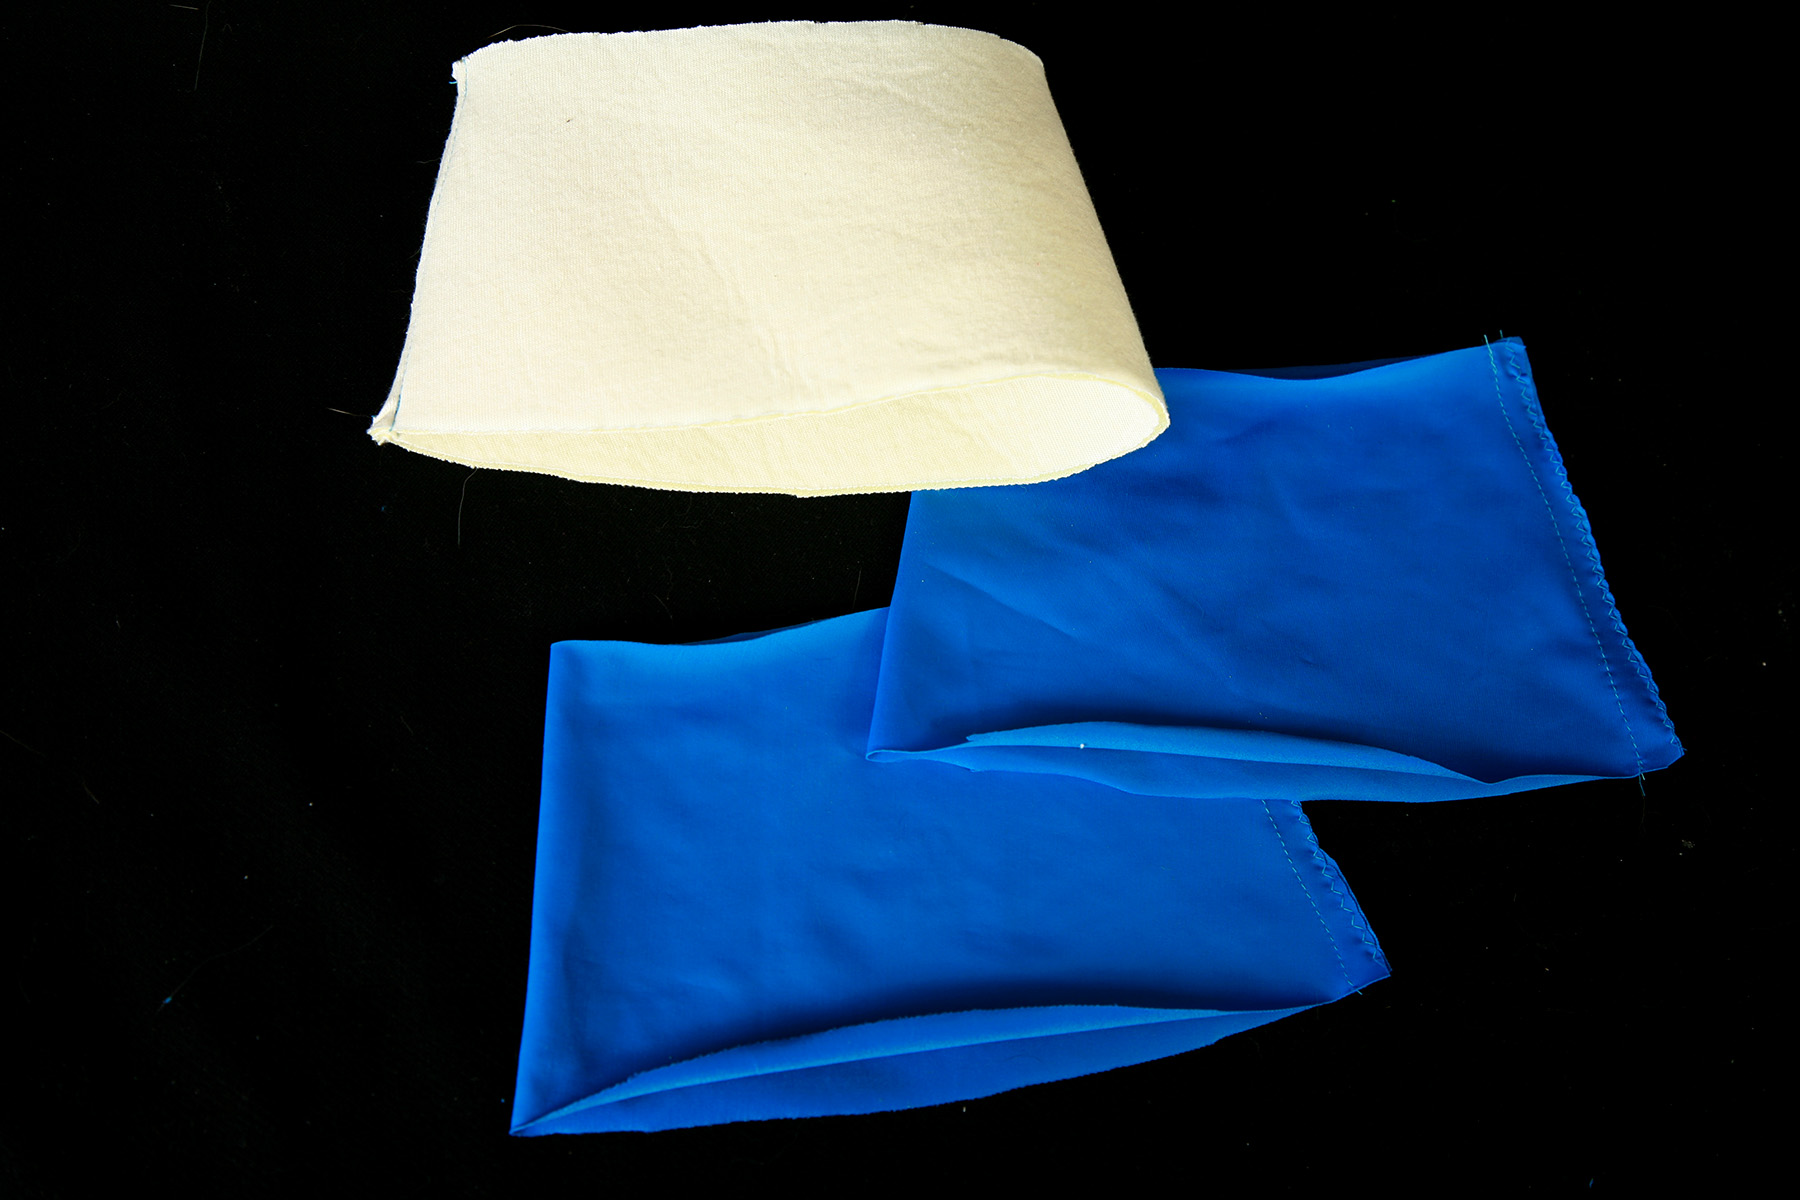 3 cuff pieces - 2 blue spandex pieces, 1 foam piece - laying on a black background.